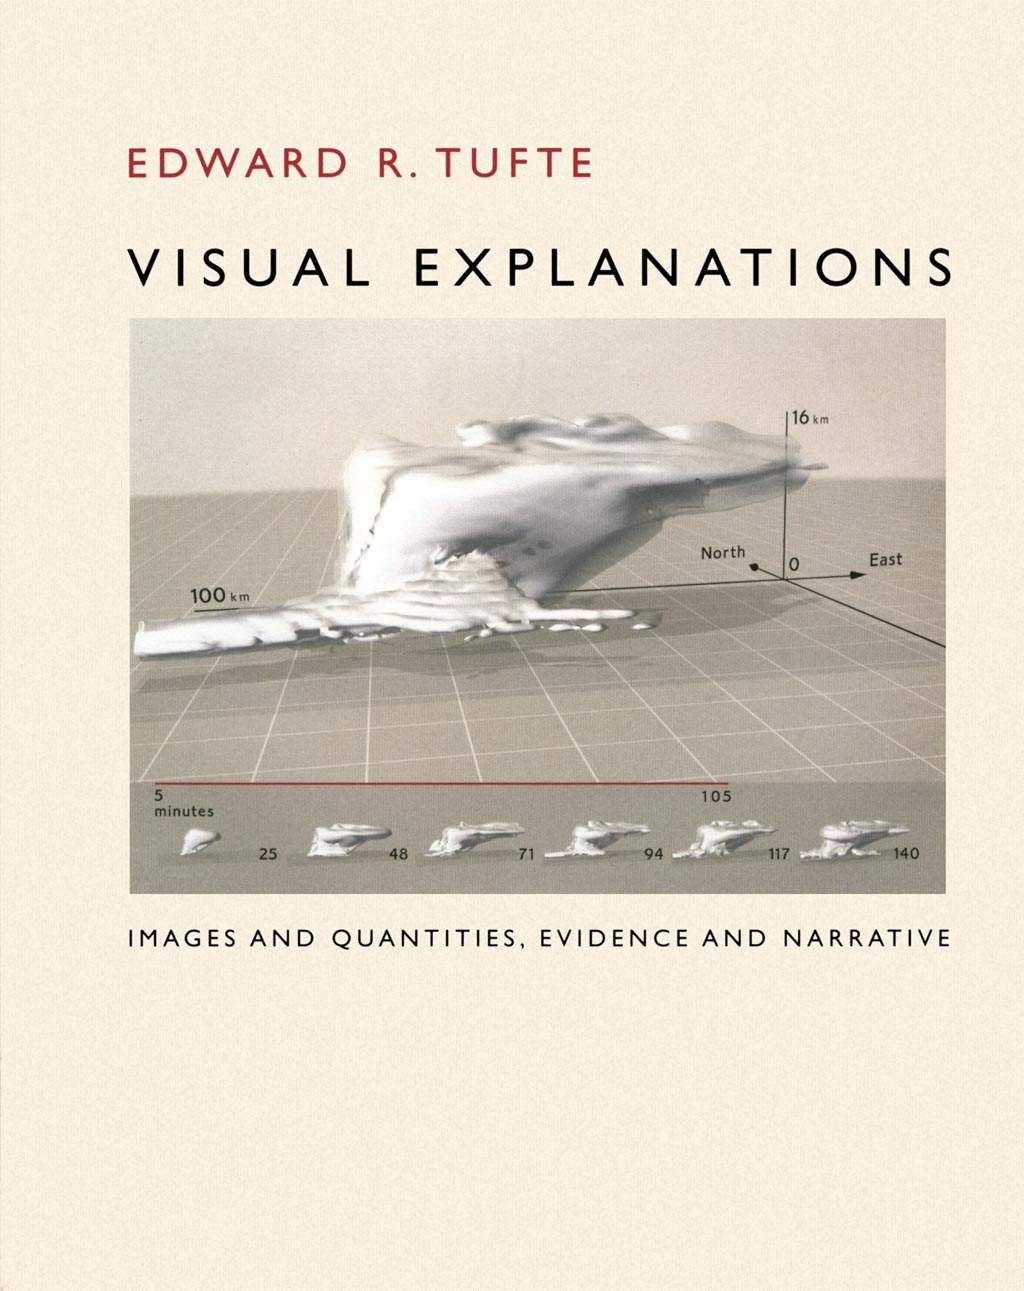 Visual Explanations (front cover) - Edward R. Tufte